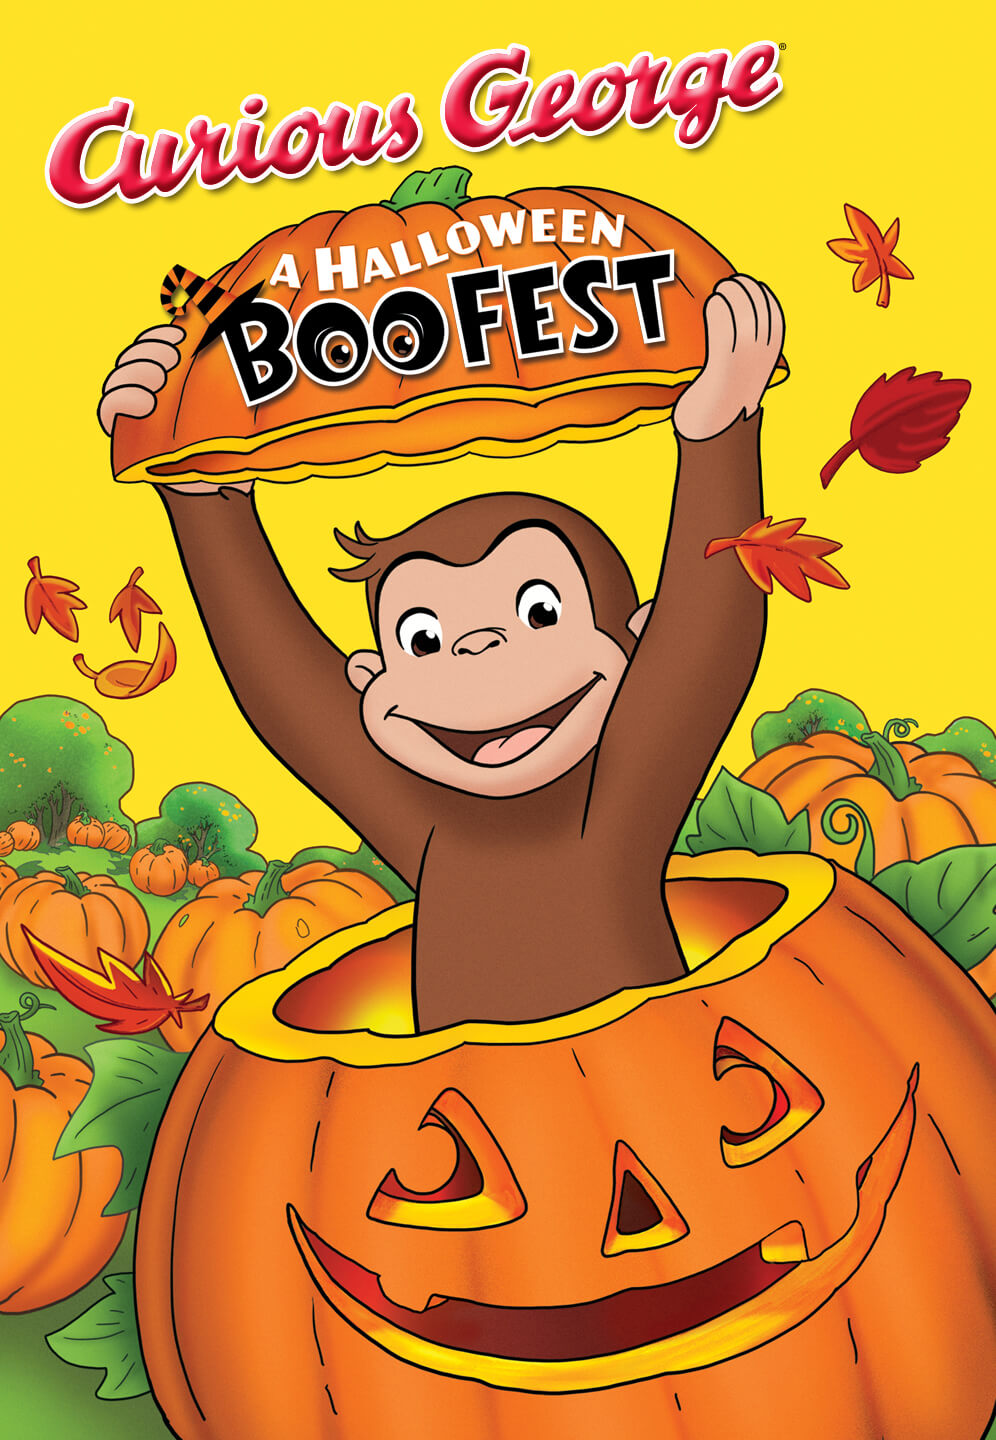 halloween film for barn er Curious George: A Halloween Boo Fest